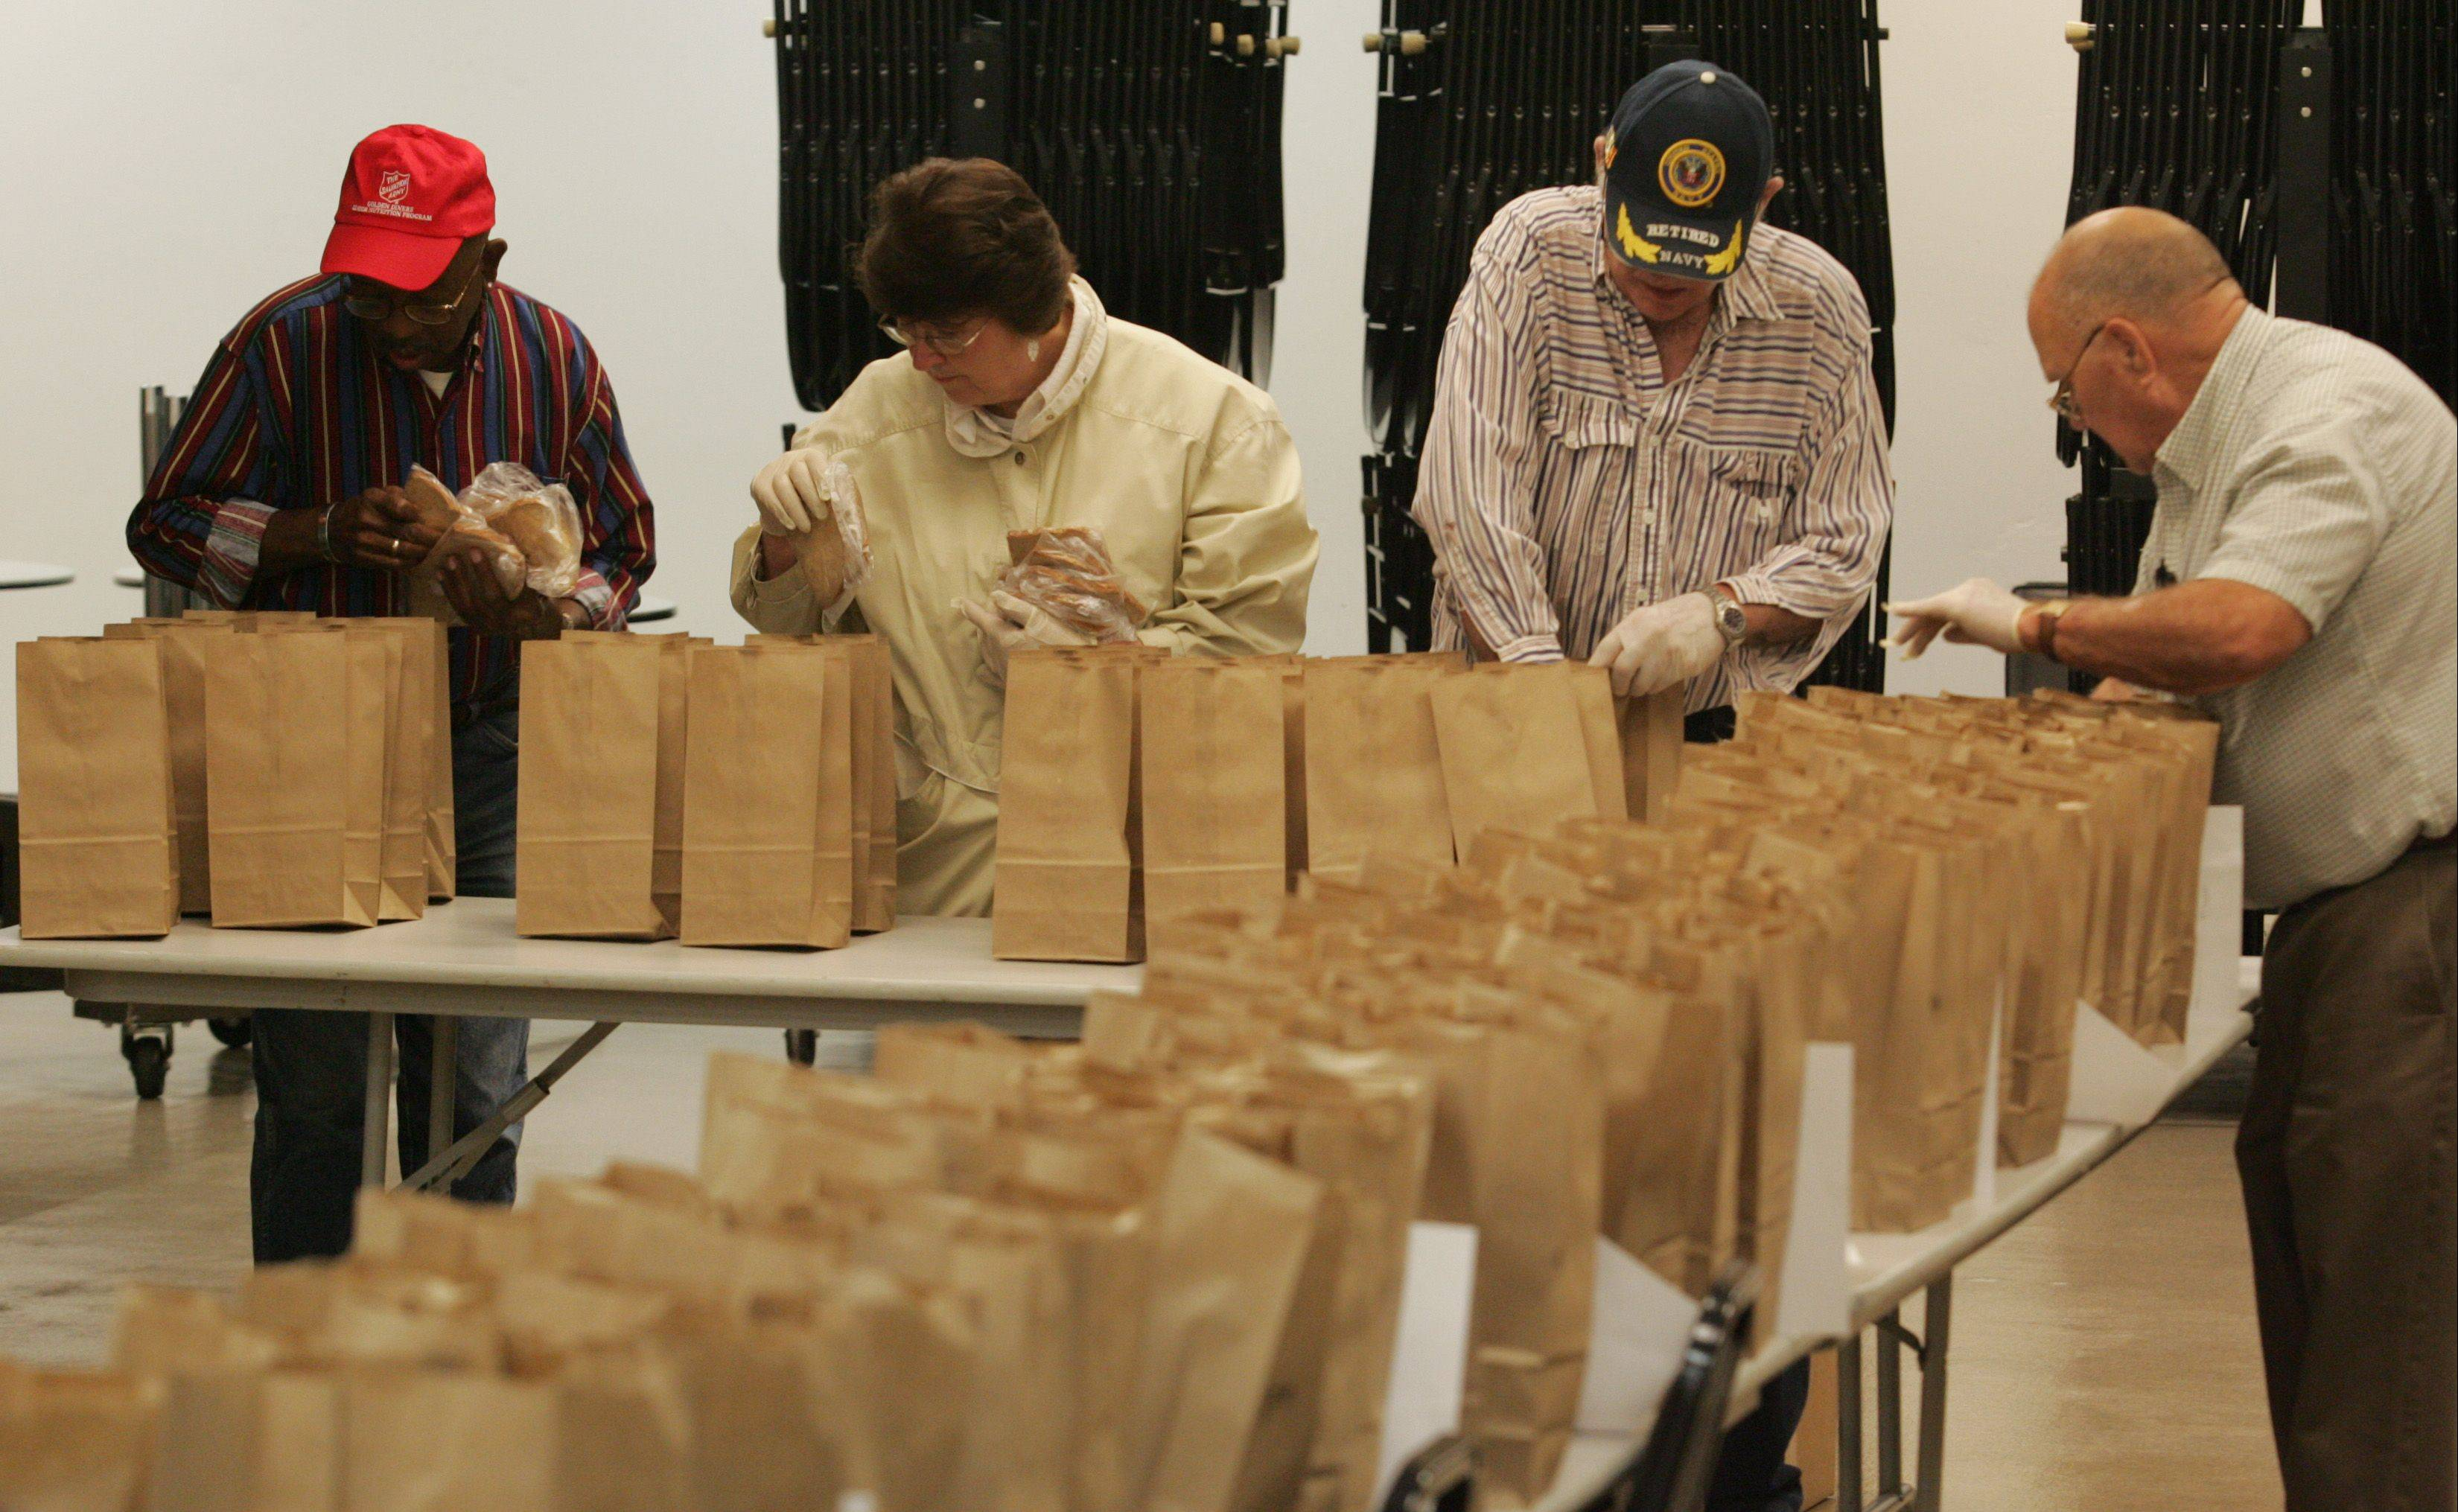 Volunteers and employees at the Salvation Army Golden Diners program fill lunch sacks with sandwiches at the Hemmens Cultural Center in downtown Elgin. From left are Leslie Thomas of Elgin, Sue Feikema of West Dundee, and Frank Plushkis and Gordon Roe, both of Elgin.